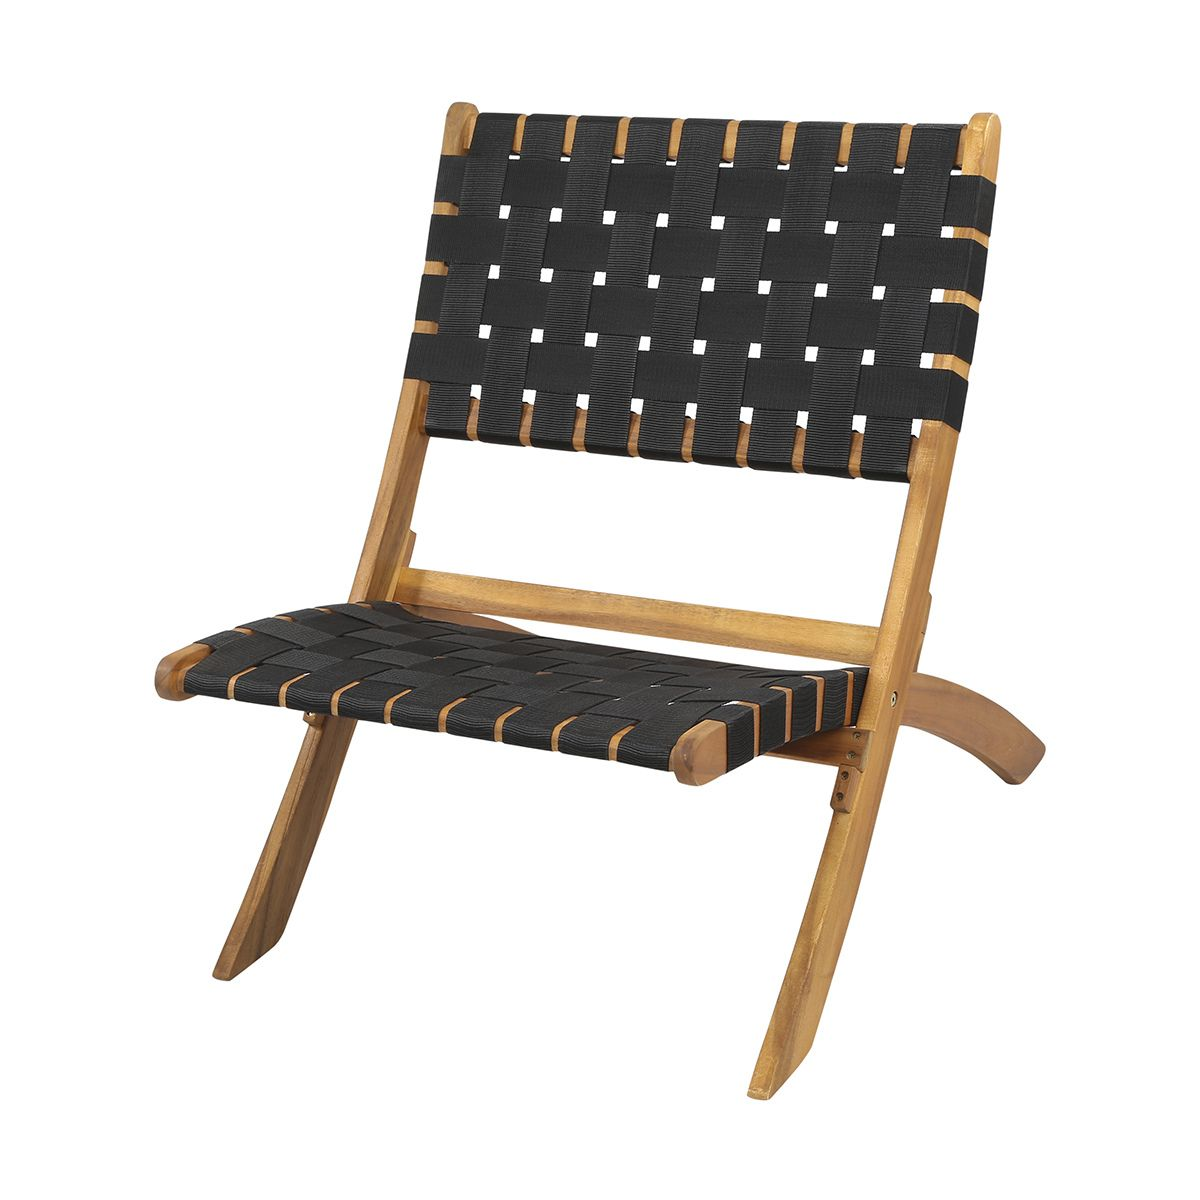 Outdoor Chairs Kmart How To Recover Glider Rocking Chair Cushions Woven Things